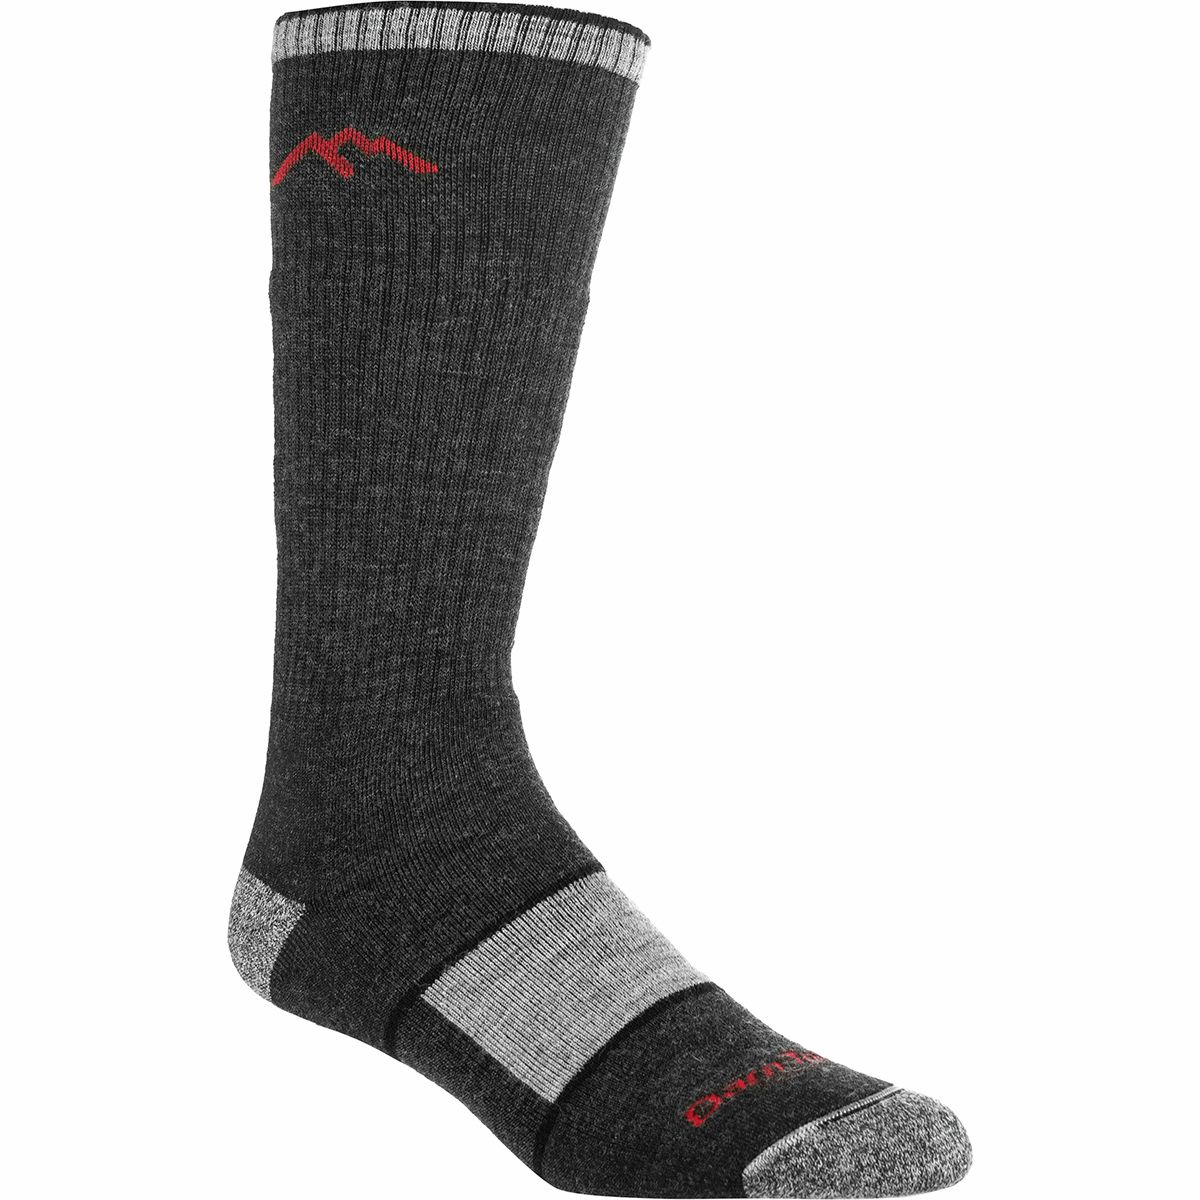 Darn Tough Merino Boot Sock Full Cushion